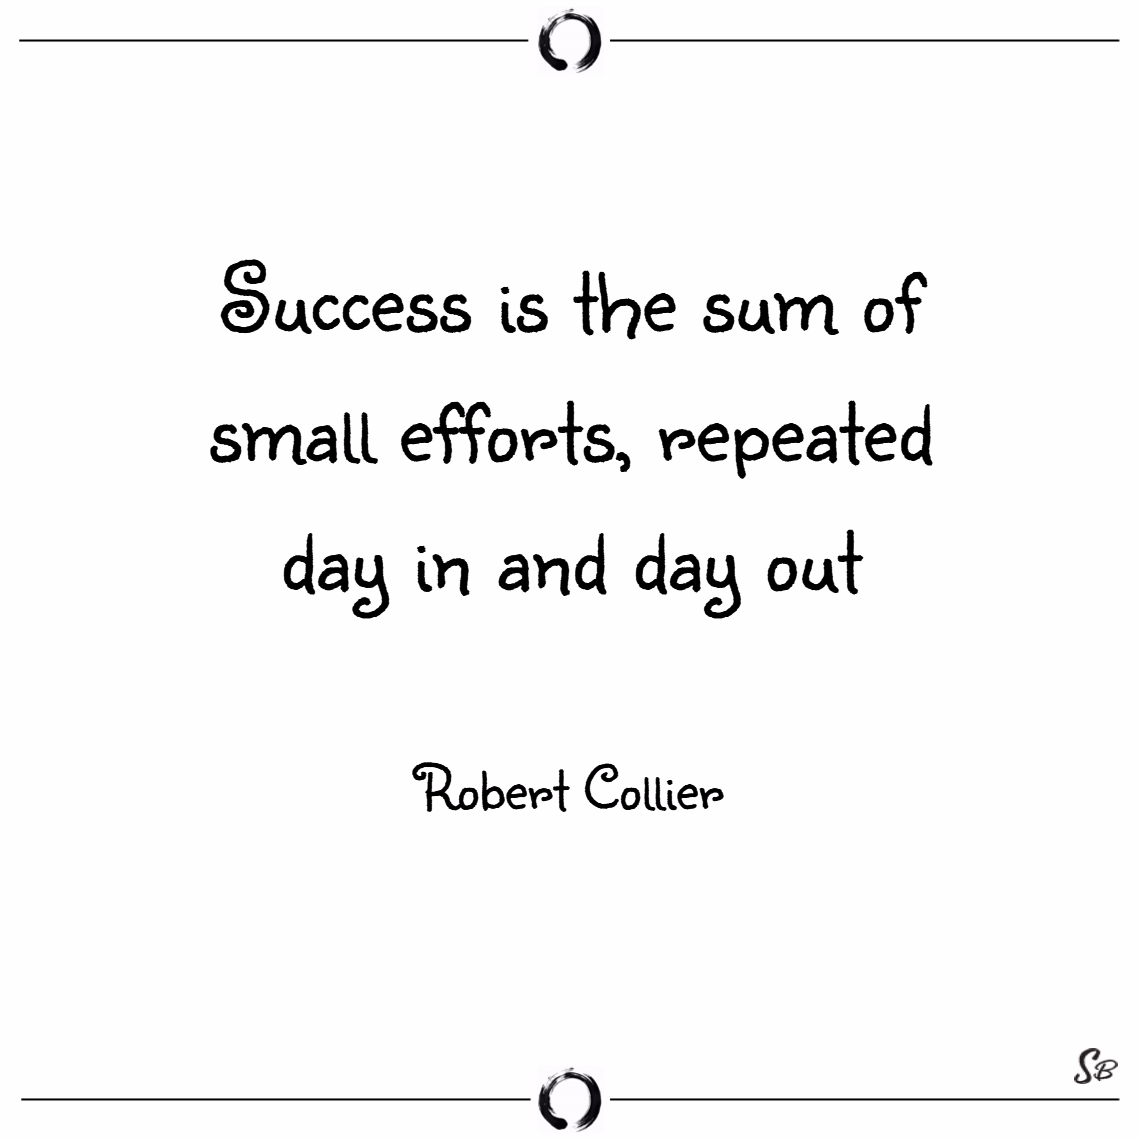 Success is the sum of small efforts, repeated day in and day out. – robert collier